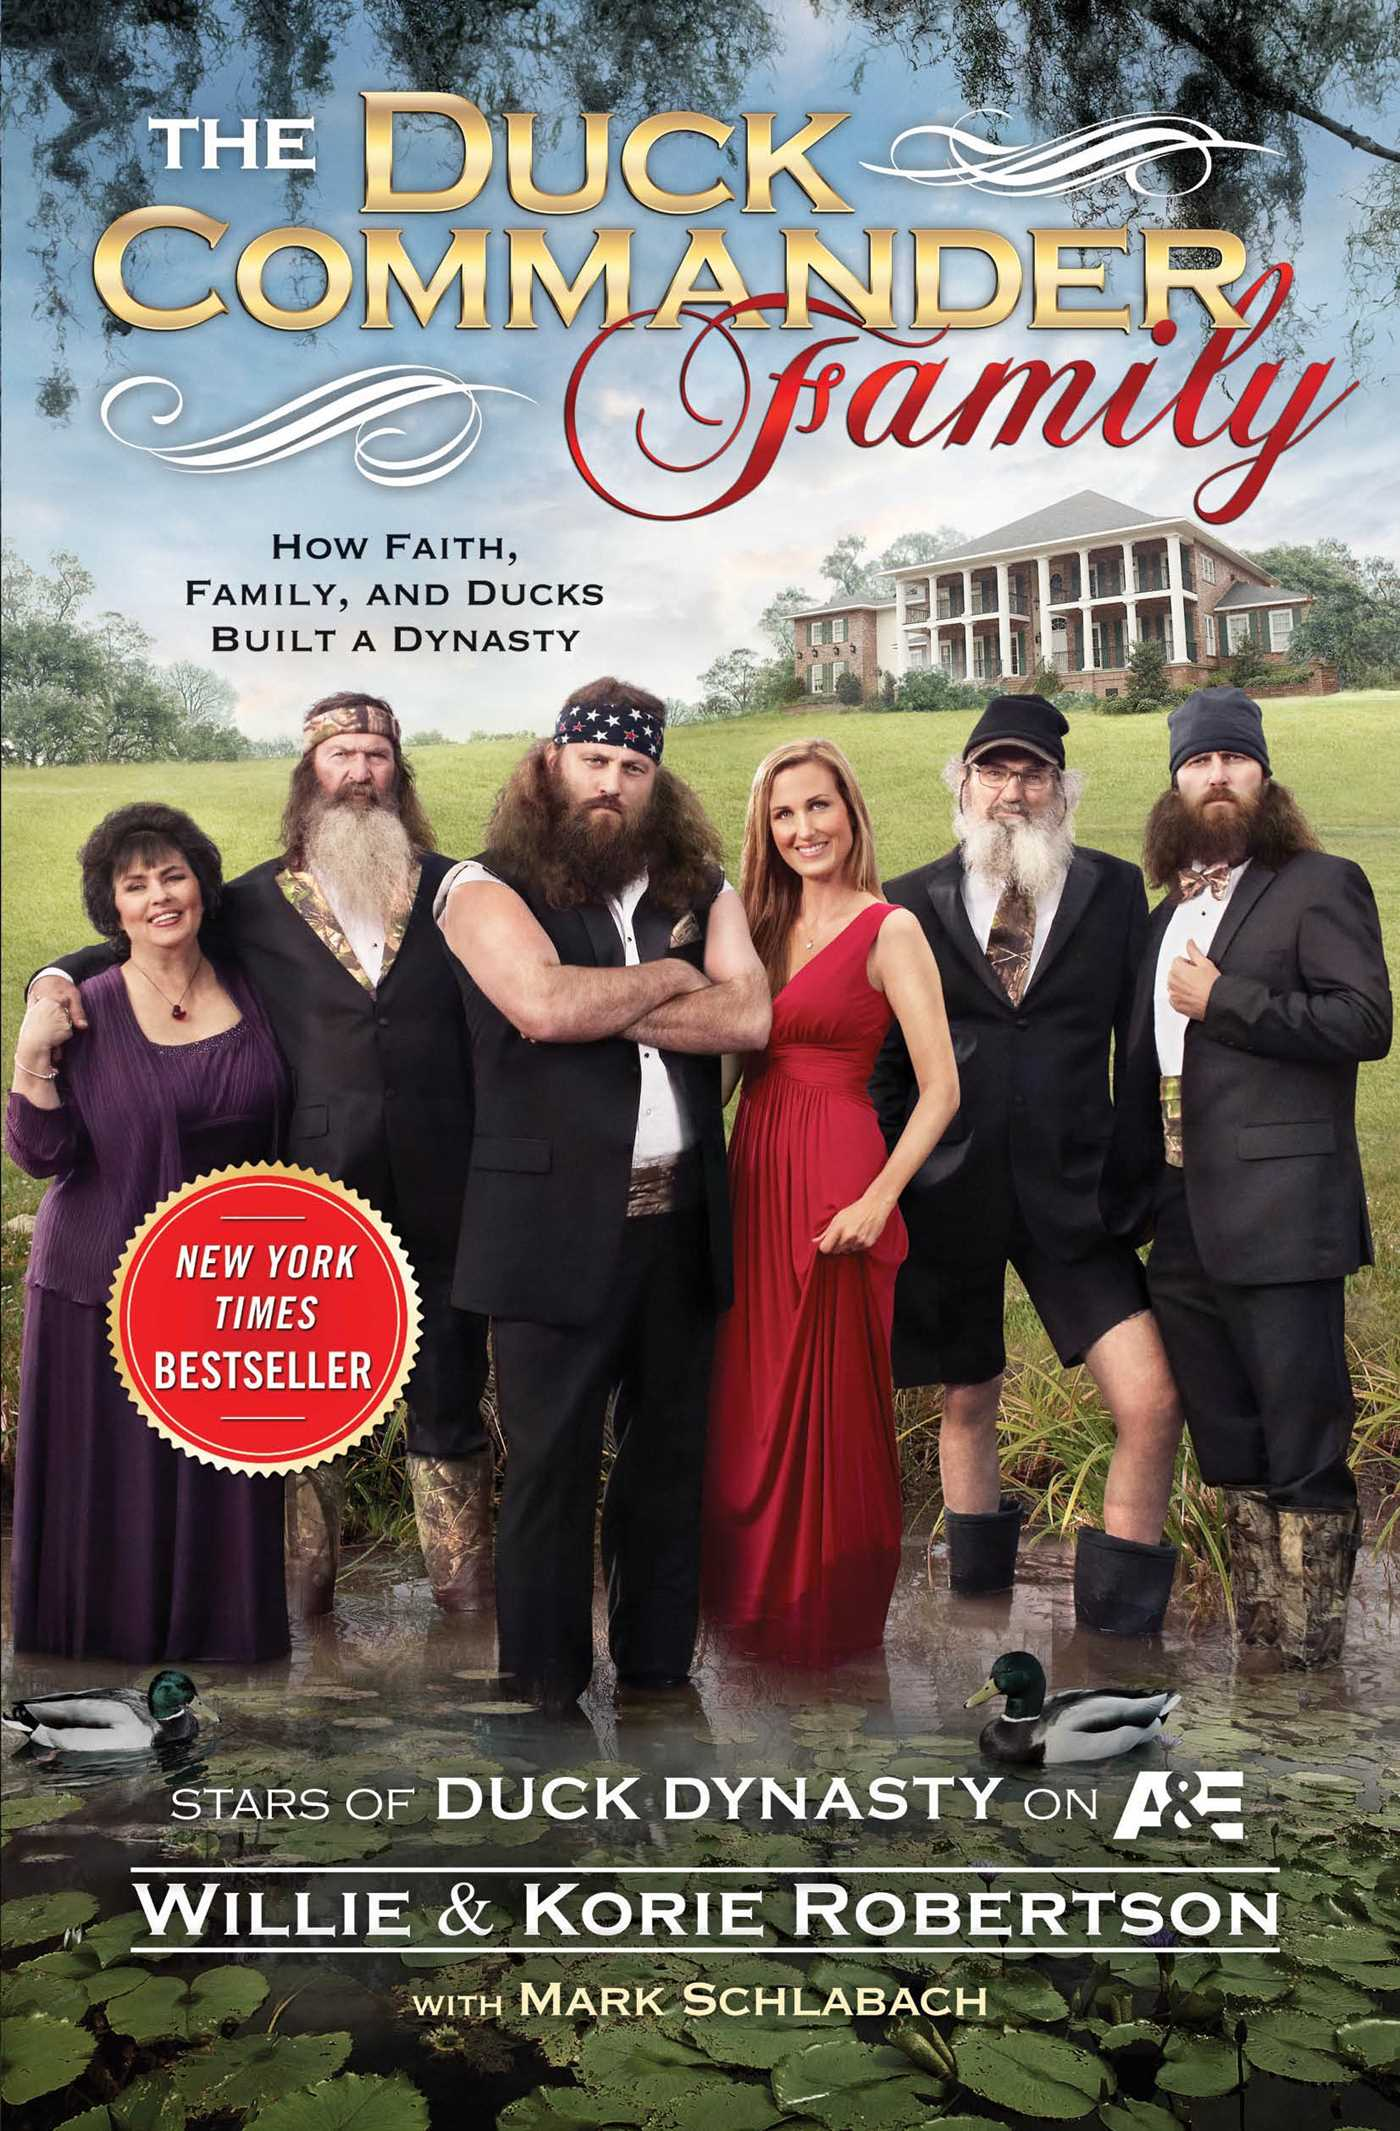 Duck-commander-family-9781476703626_hr